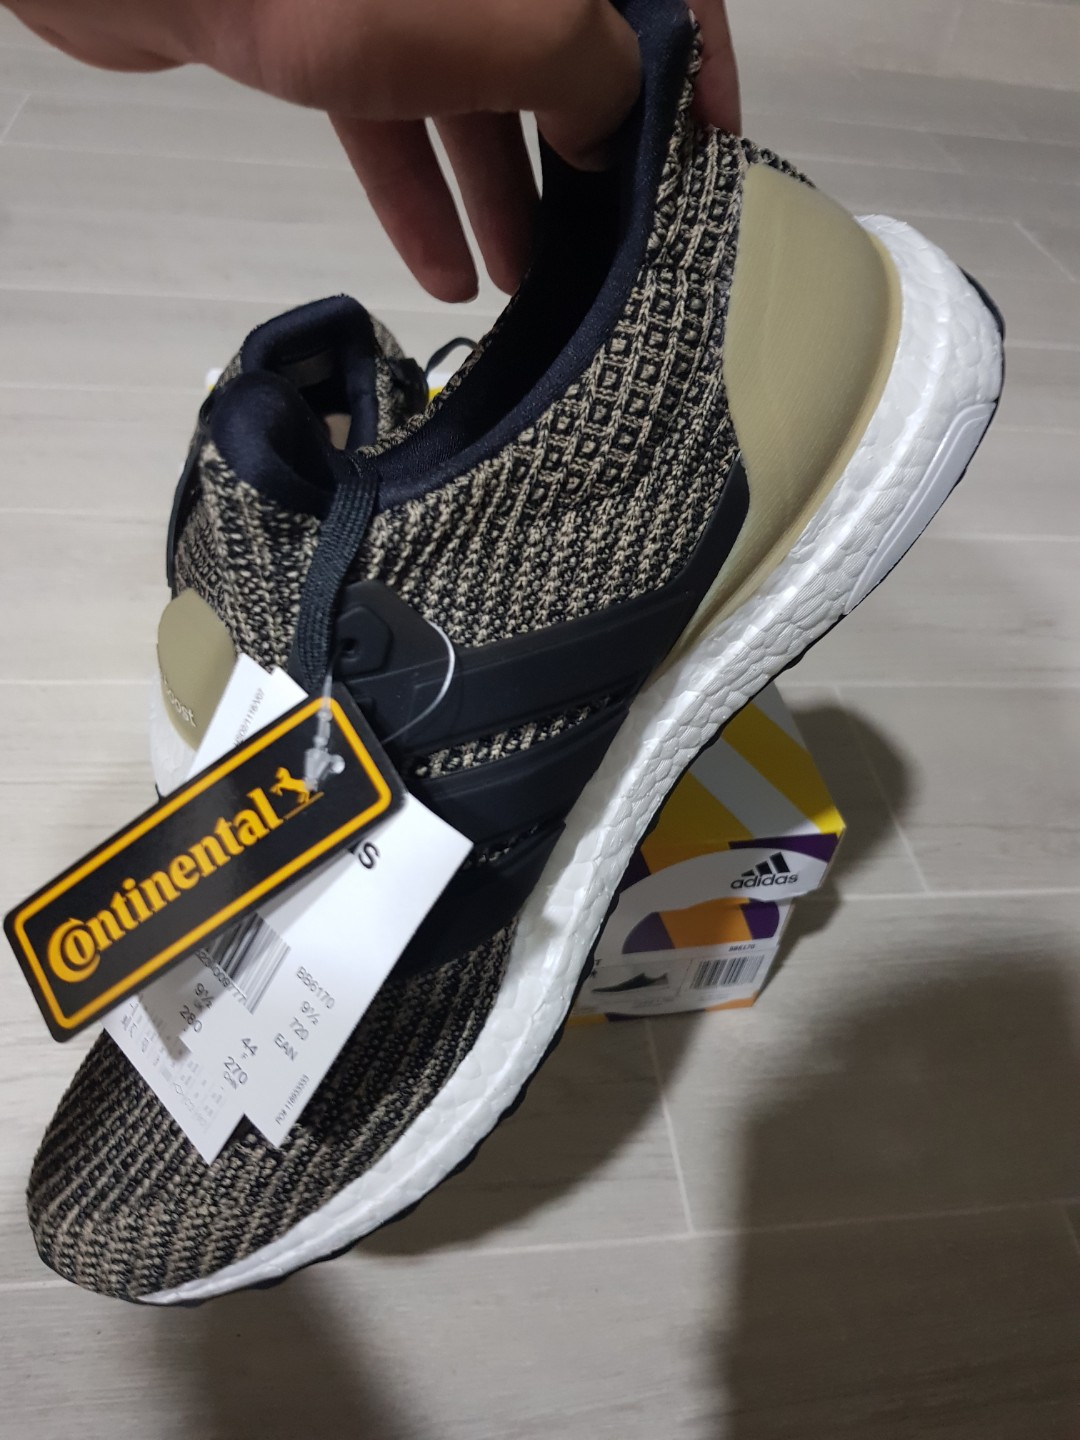 a261725eb  CUSTOMER ORDERS  Adidas Ultraboost 4.0 Black and Gold (Dark Mocha) Flash  Sale!